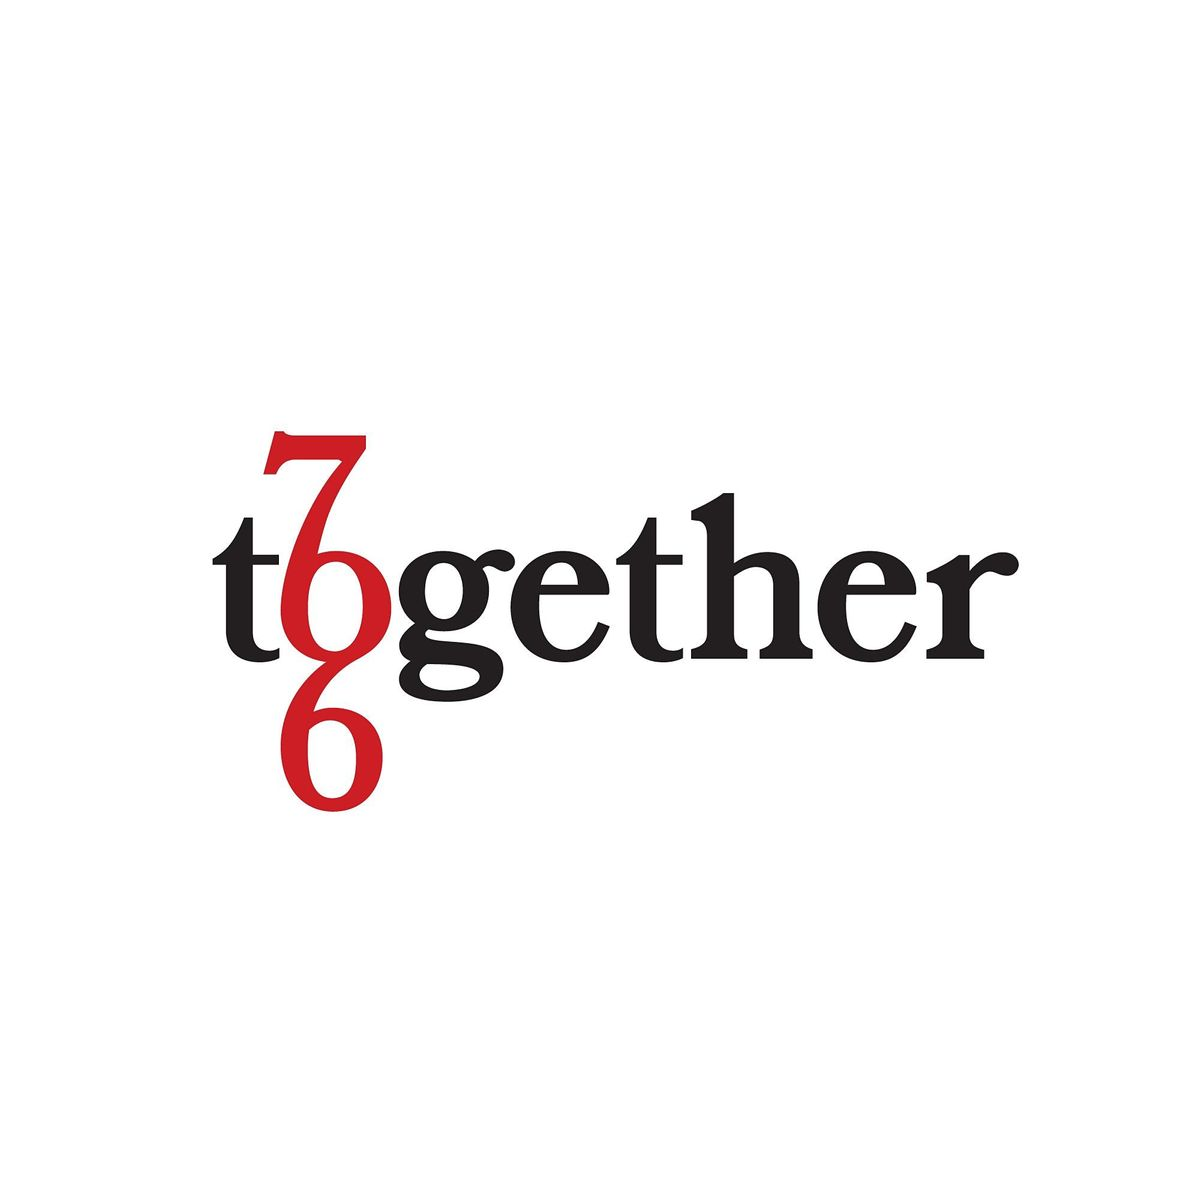 2nd Annual 706 Together Christmas Cocktail, 12 December | Event in Athens | AllEvents.in